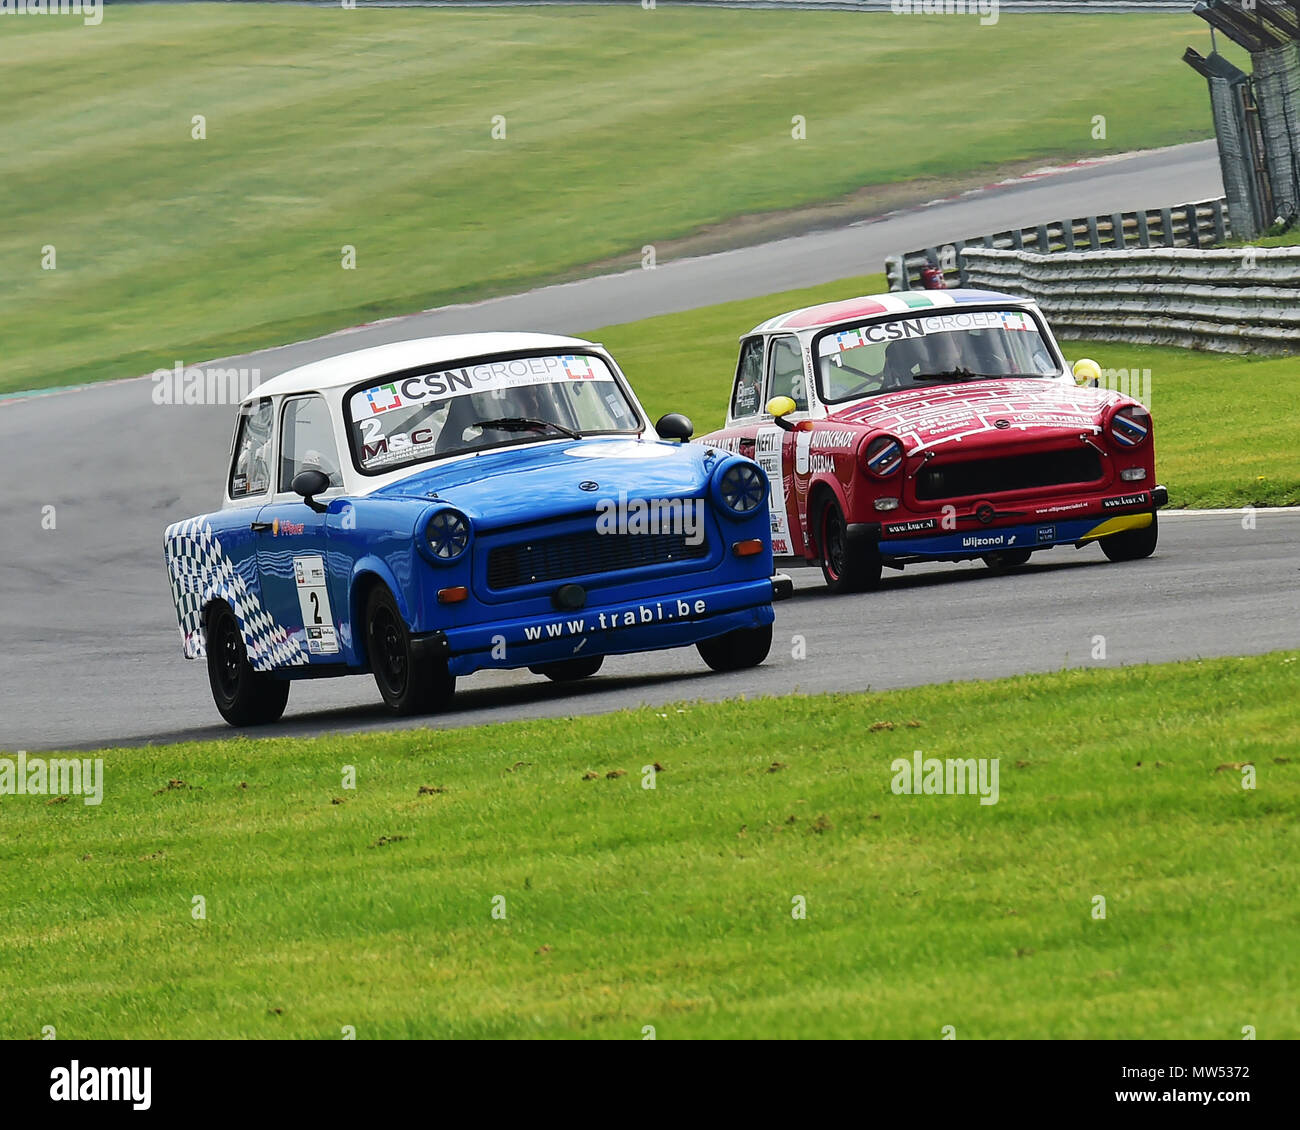 Battling Trabbies, 600cc of pure 2 stroke power, Bart Lemaire, Trabant 601 RS, Albert Westerhuis, Trabant 601 RS, CSN Groep, Youngtimer Touring Car Ch - Stock Image